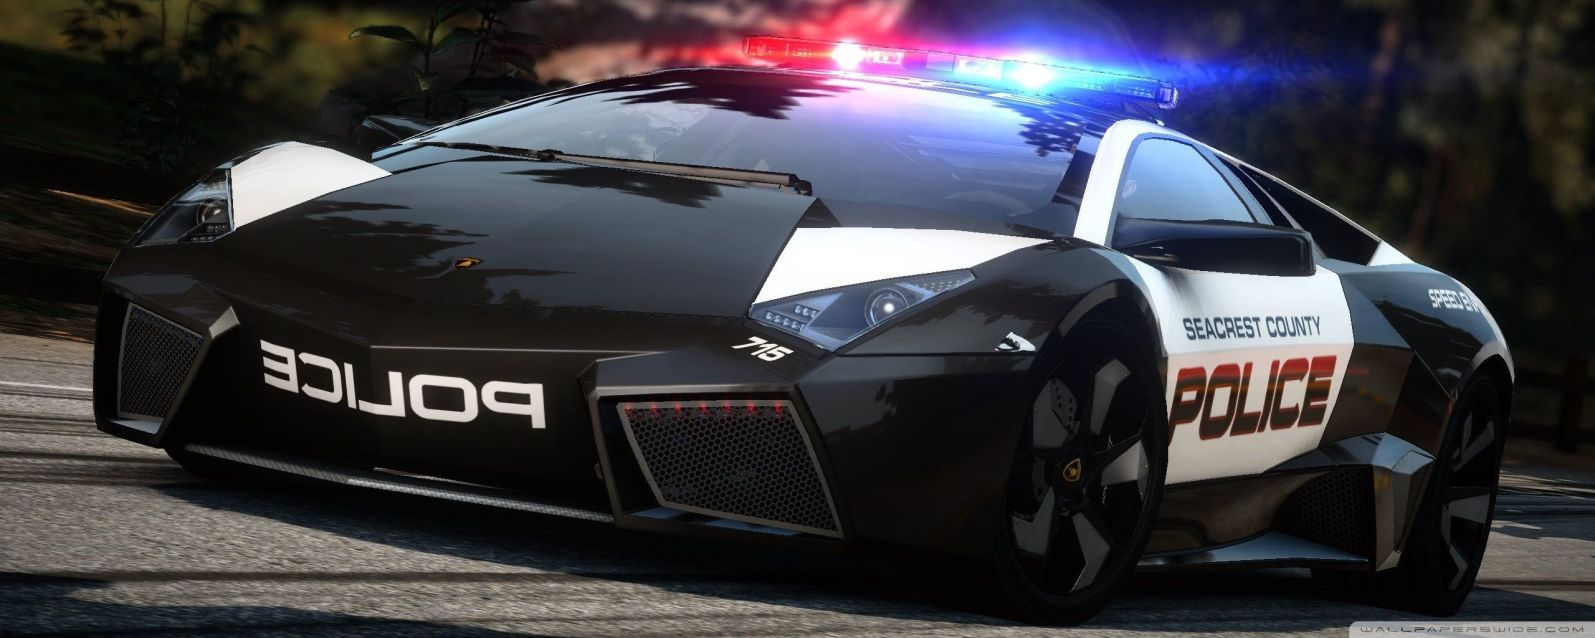 Amazing Police Sports Car - Original image